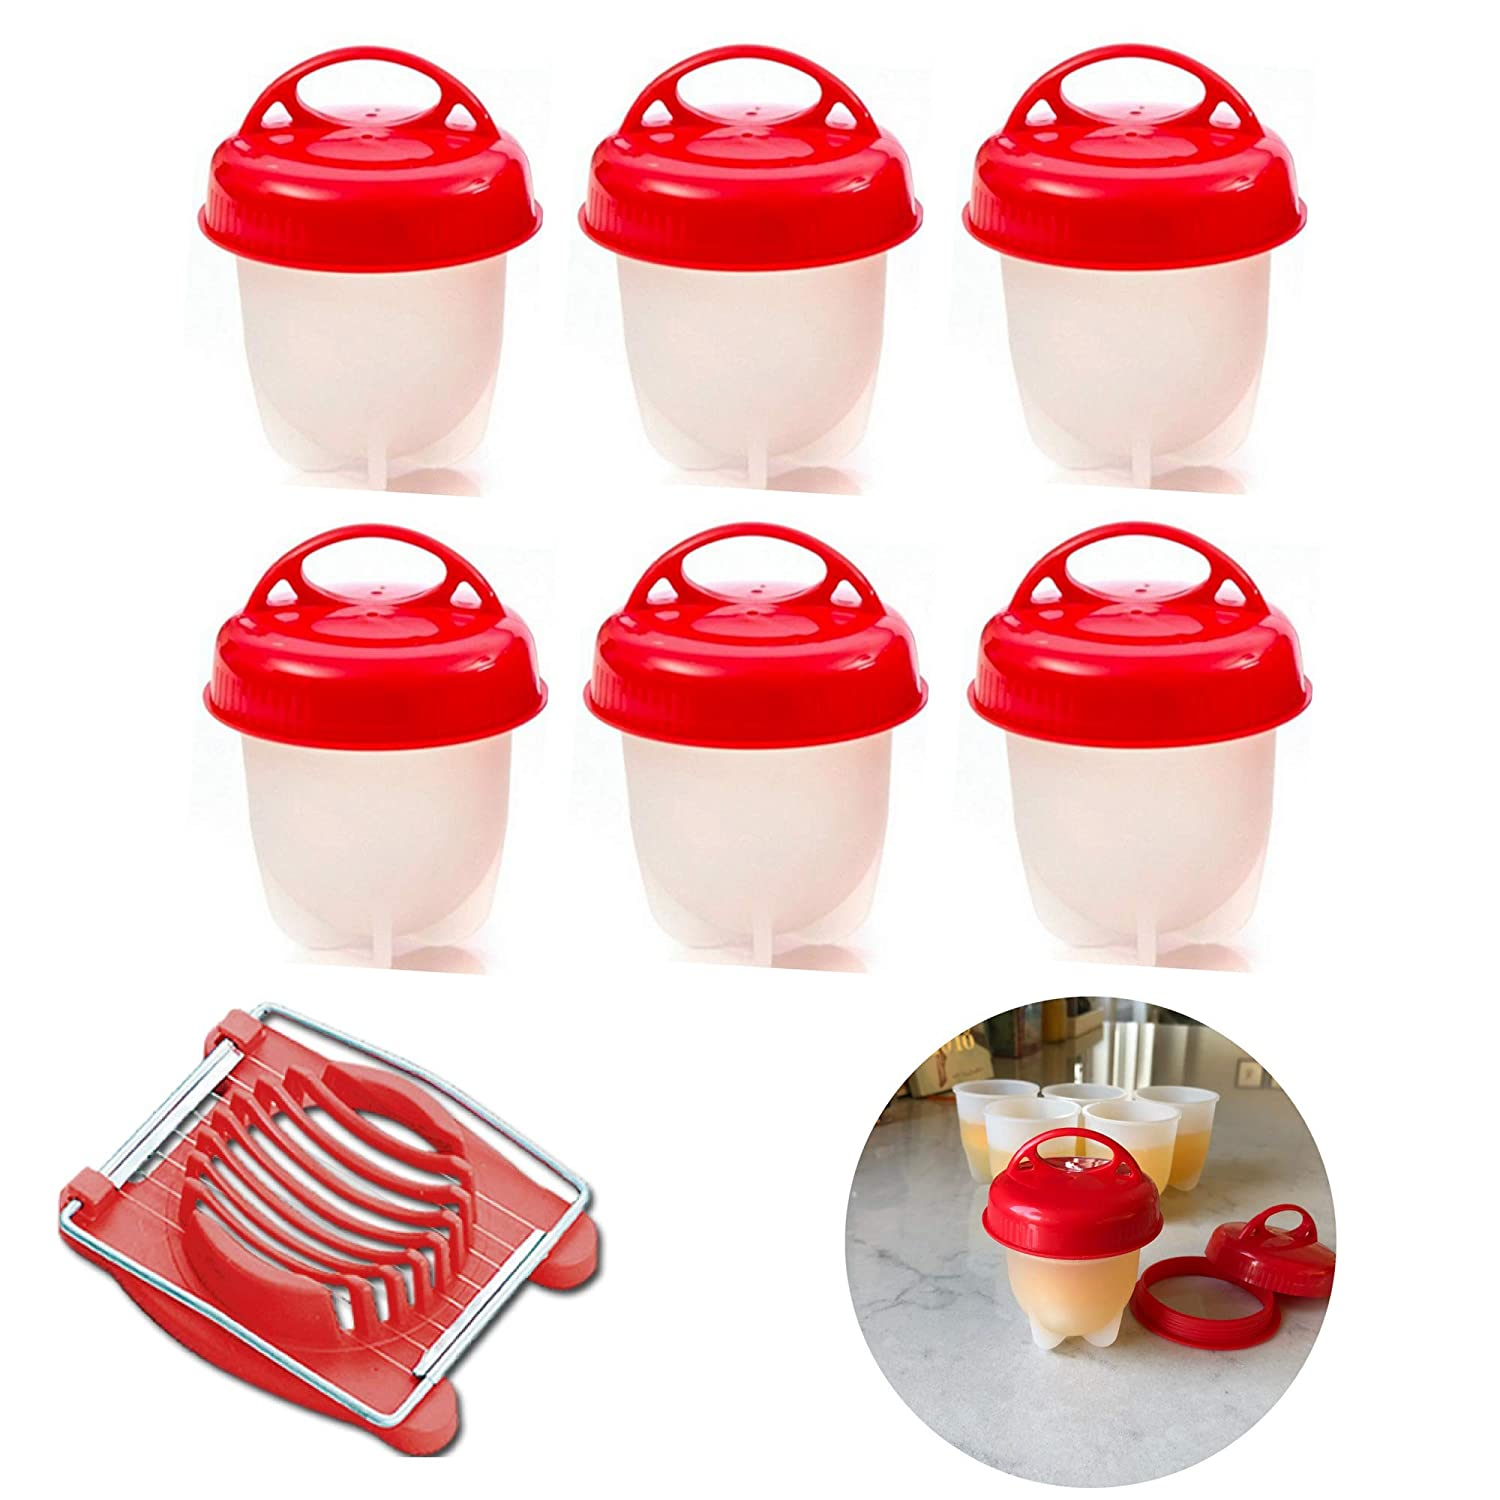 Granerud Silicone Egg Cooker, Hard Boiled Eggs Without Shell, 6 Egg Cups In Silicone Egg Slicer Included – Perfect A Quick Easy Egg Meal. Hard boiled egg maker all egg sizes!